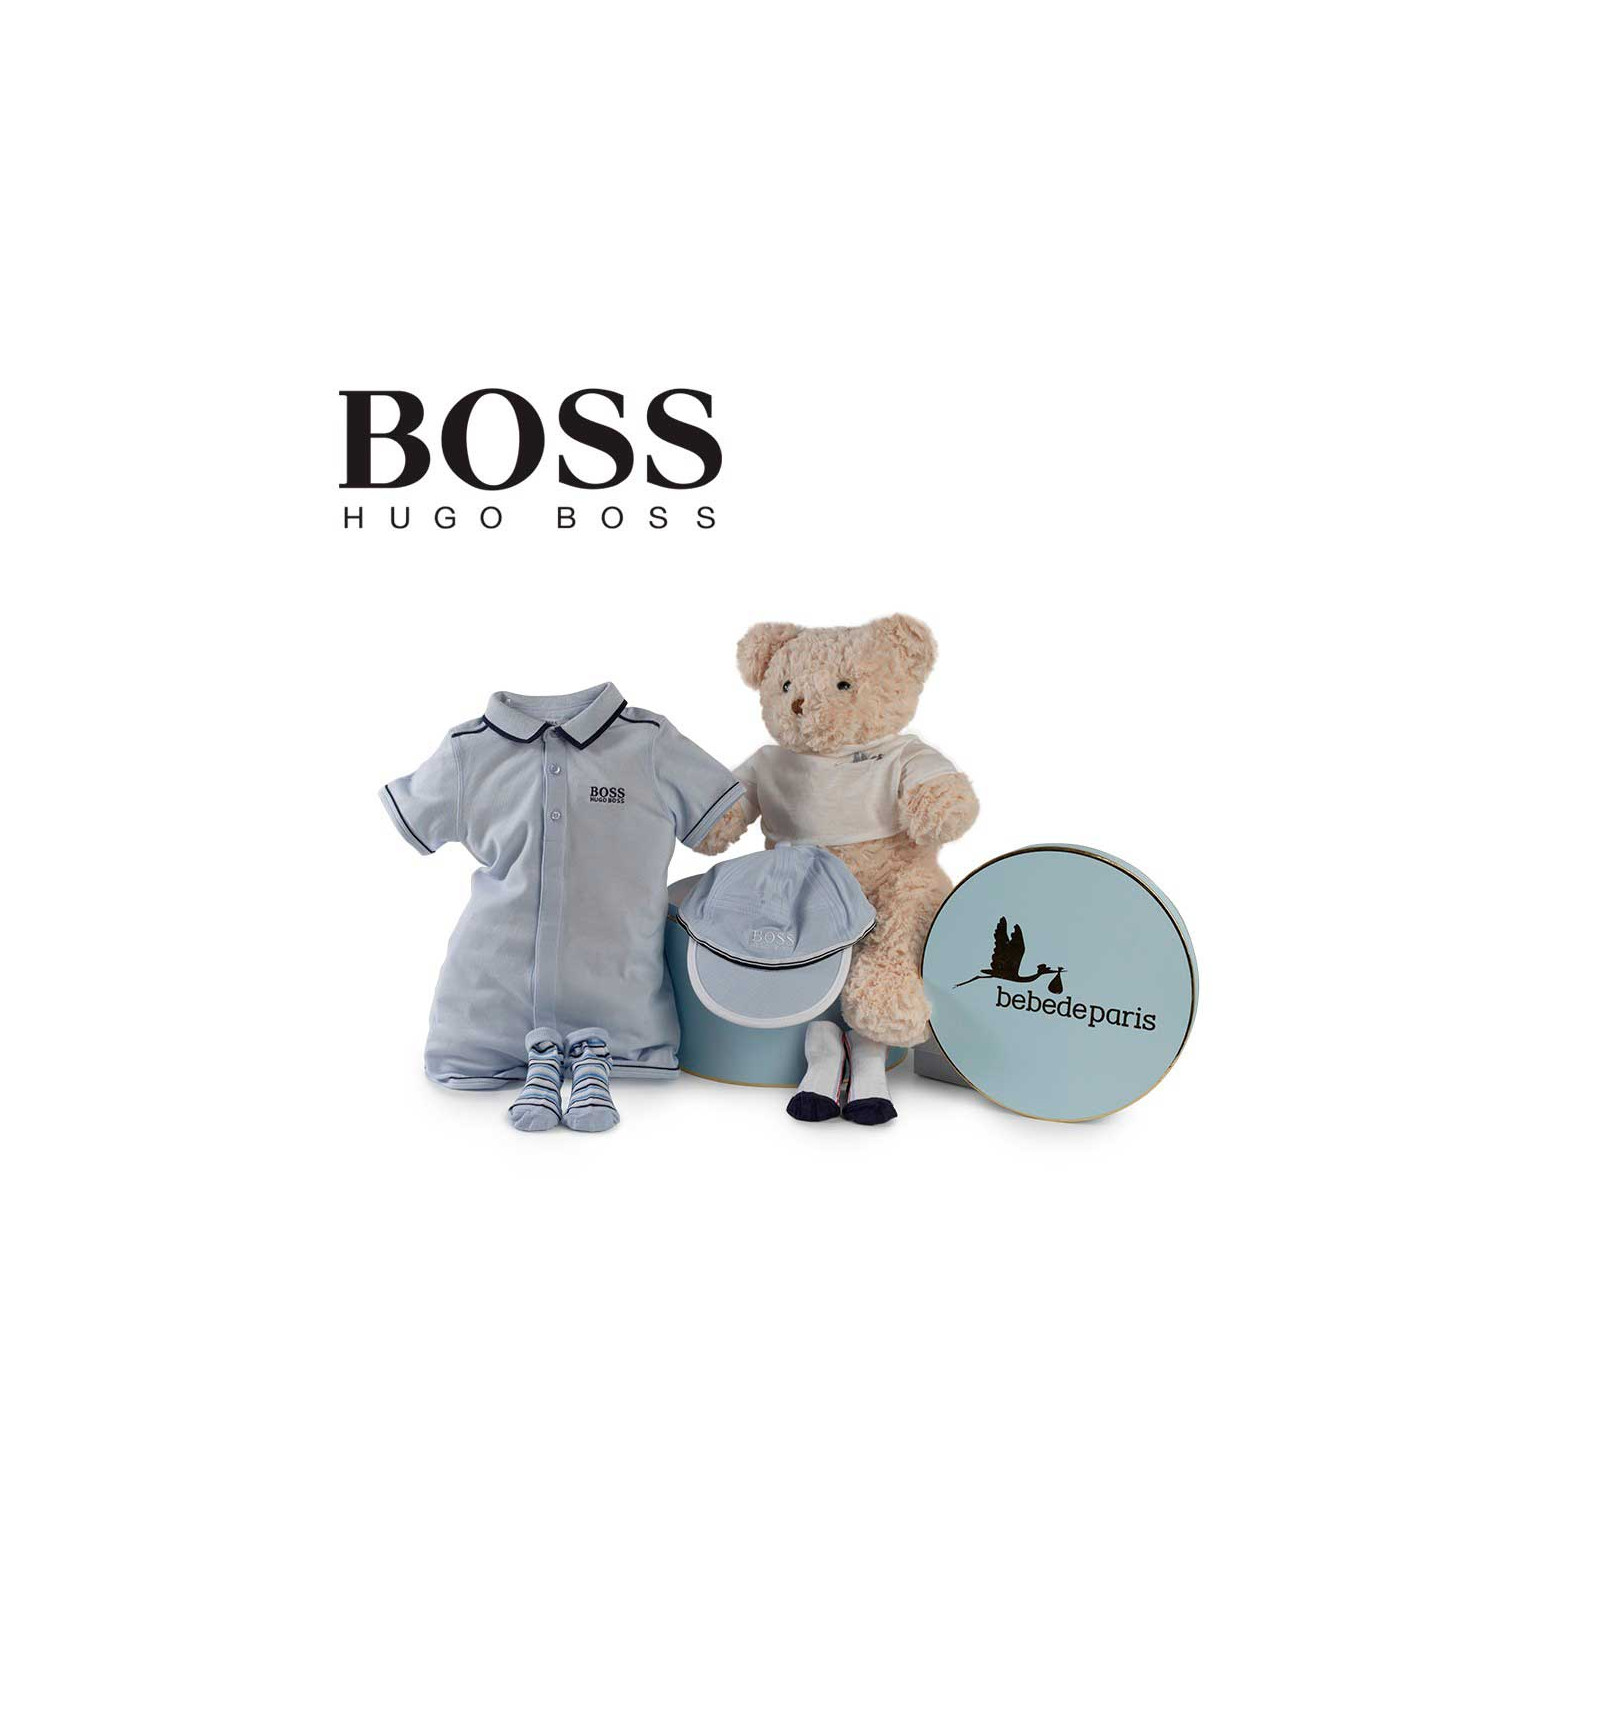 canastilla beb hugo boss polobody beb de par s. Black Bedroom Furniture Sets. Home Design Ideas